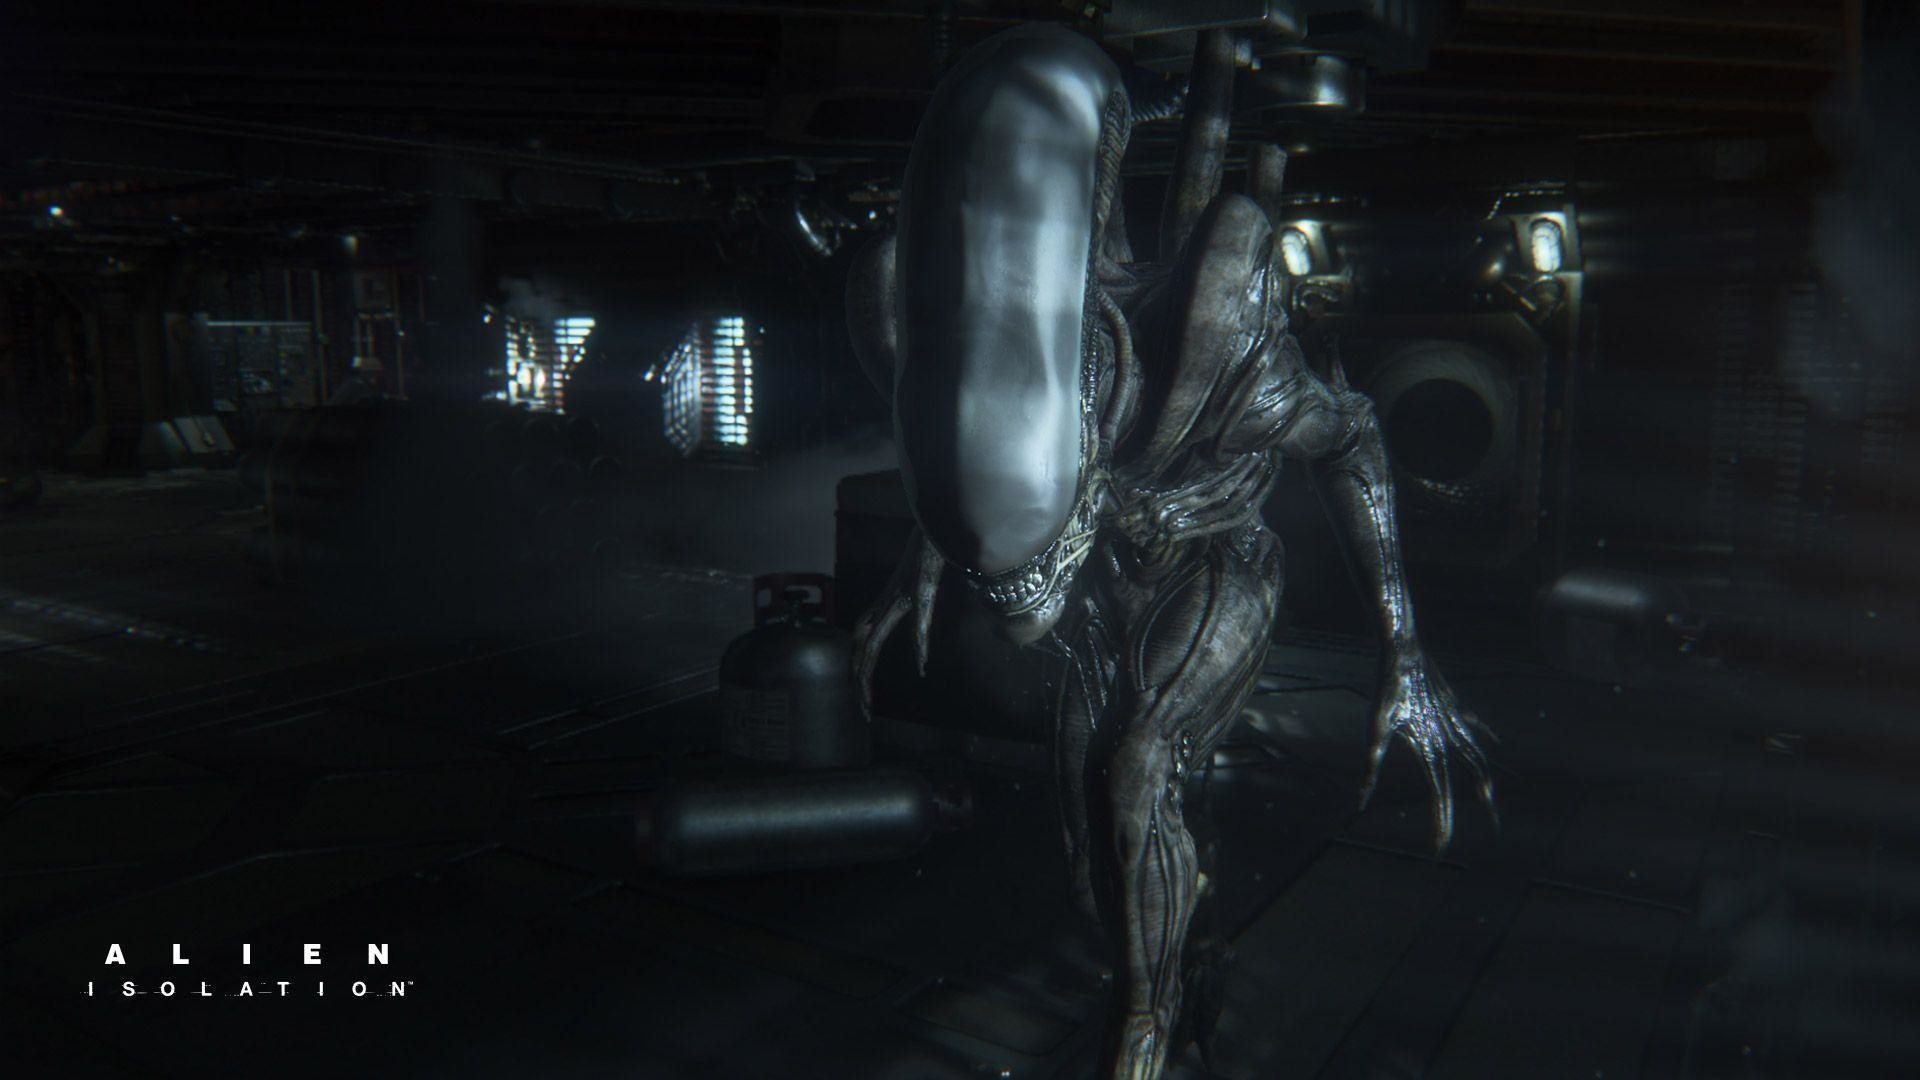 Alien Isolation Wallpaper Hd 81 Images